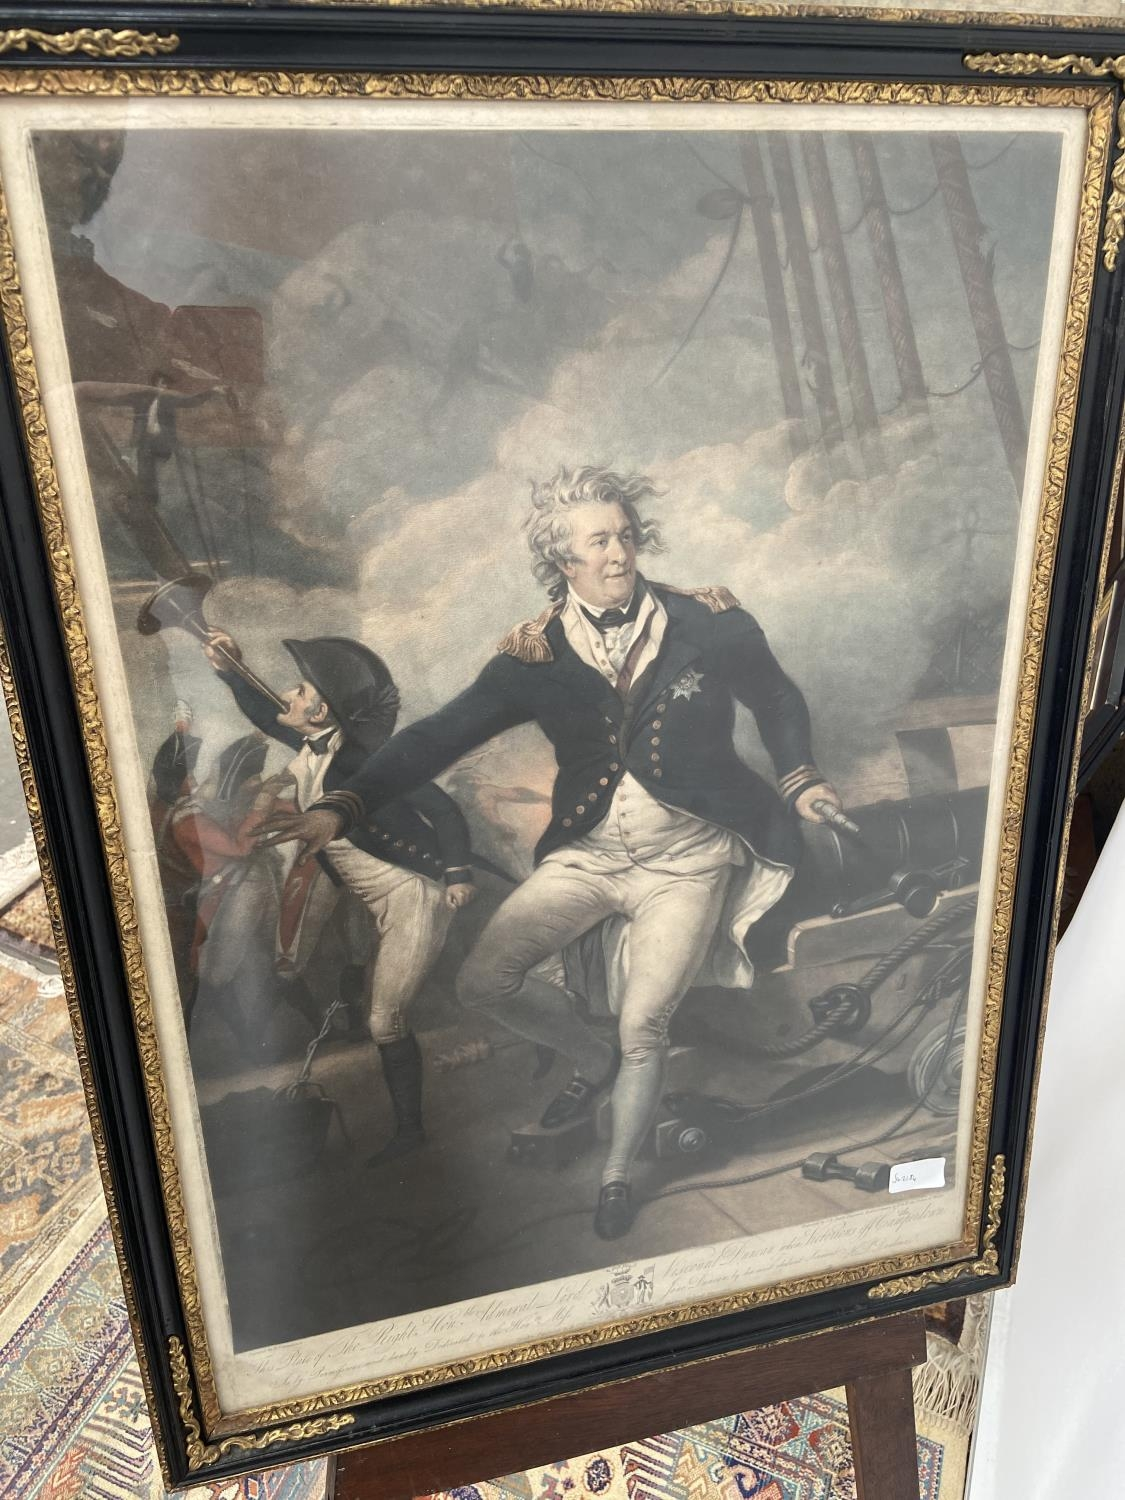 An early 19th century coloured engraving depicting Admiral Lord Viscount Duncan, fitted within a